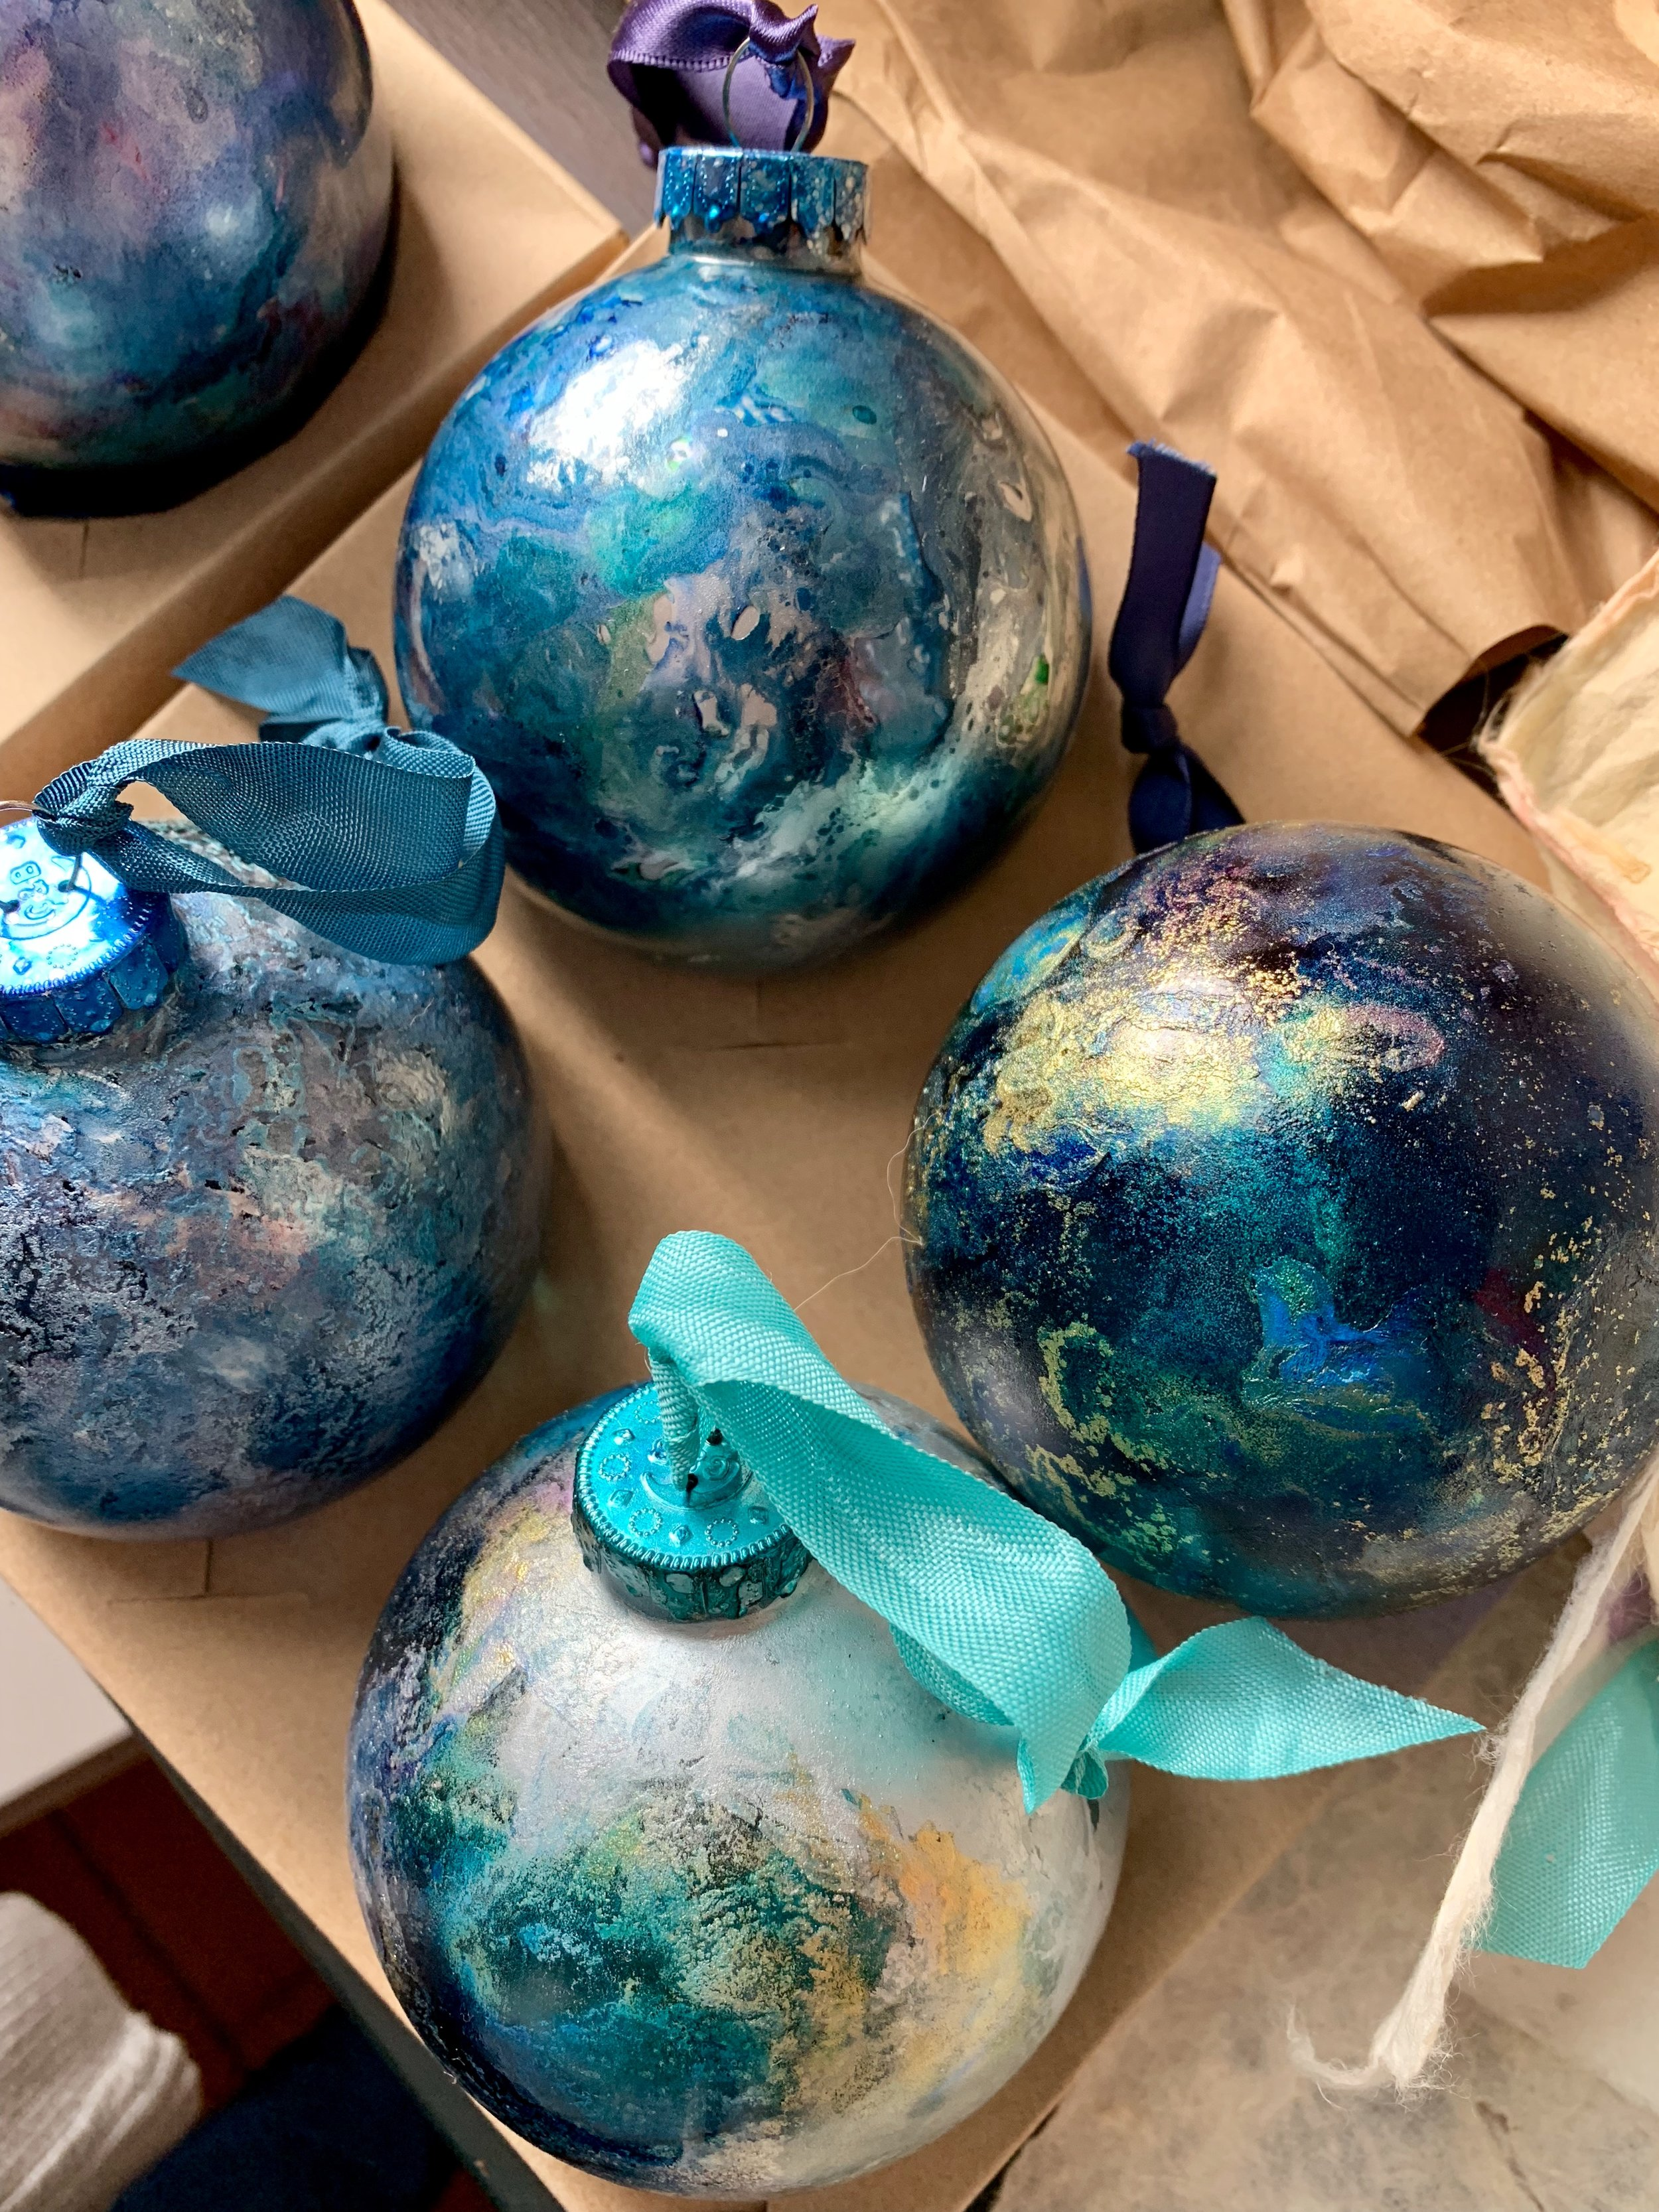 The Blue Planet Collection - Hand painted Ornaments for The Million Waves Project